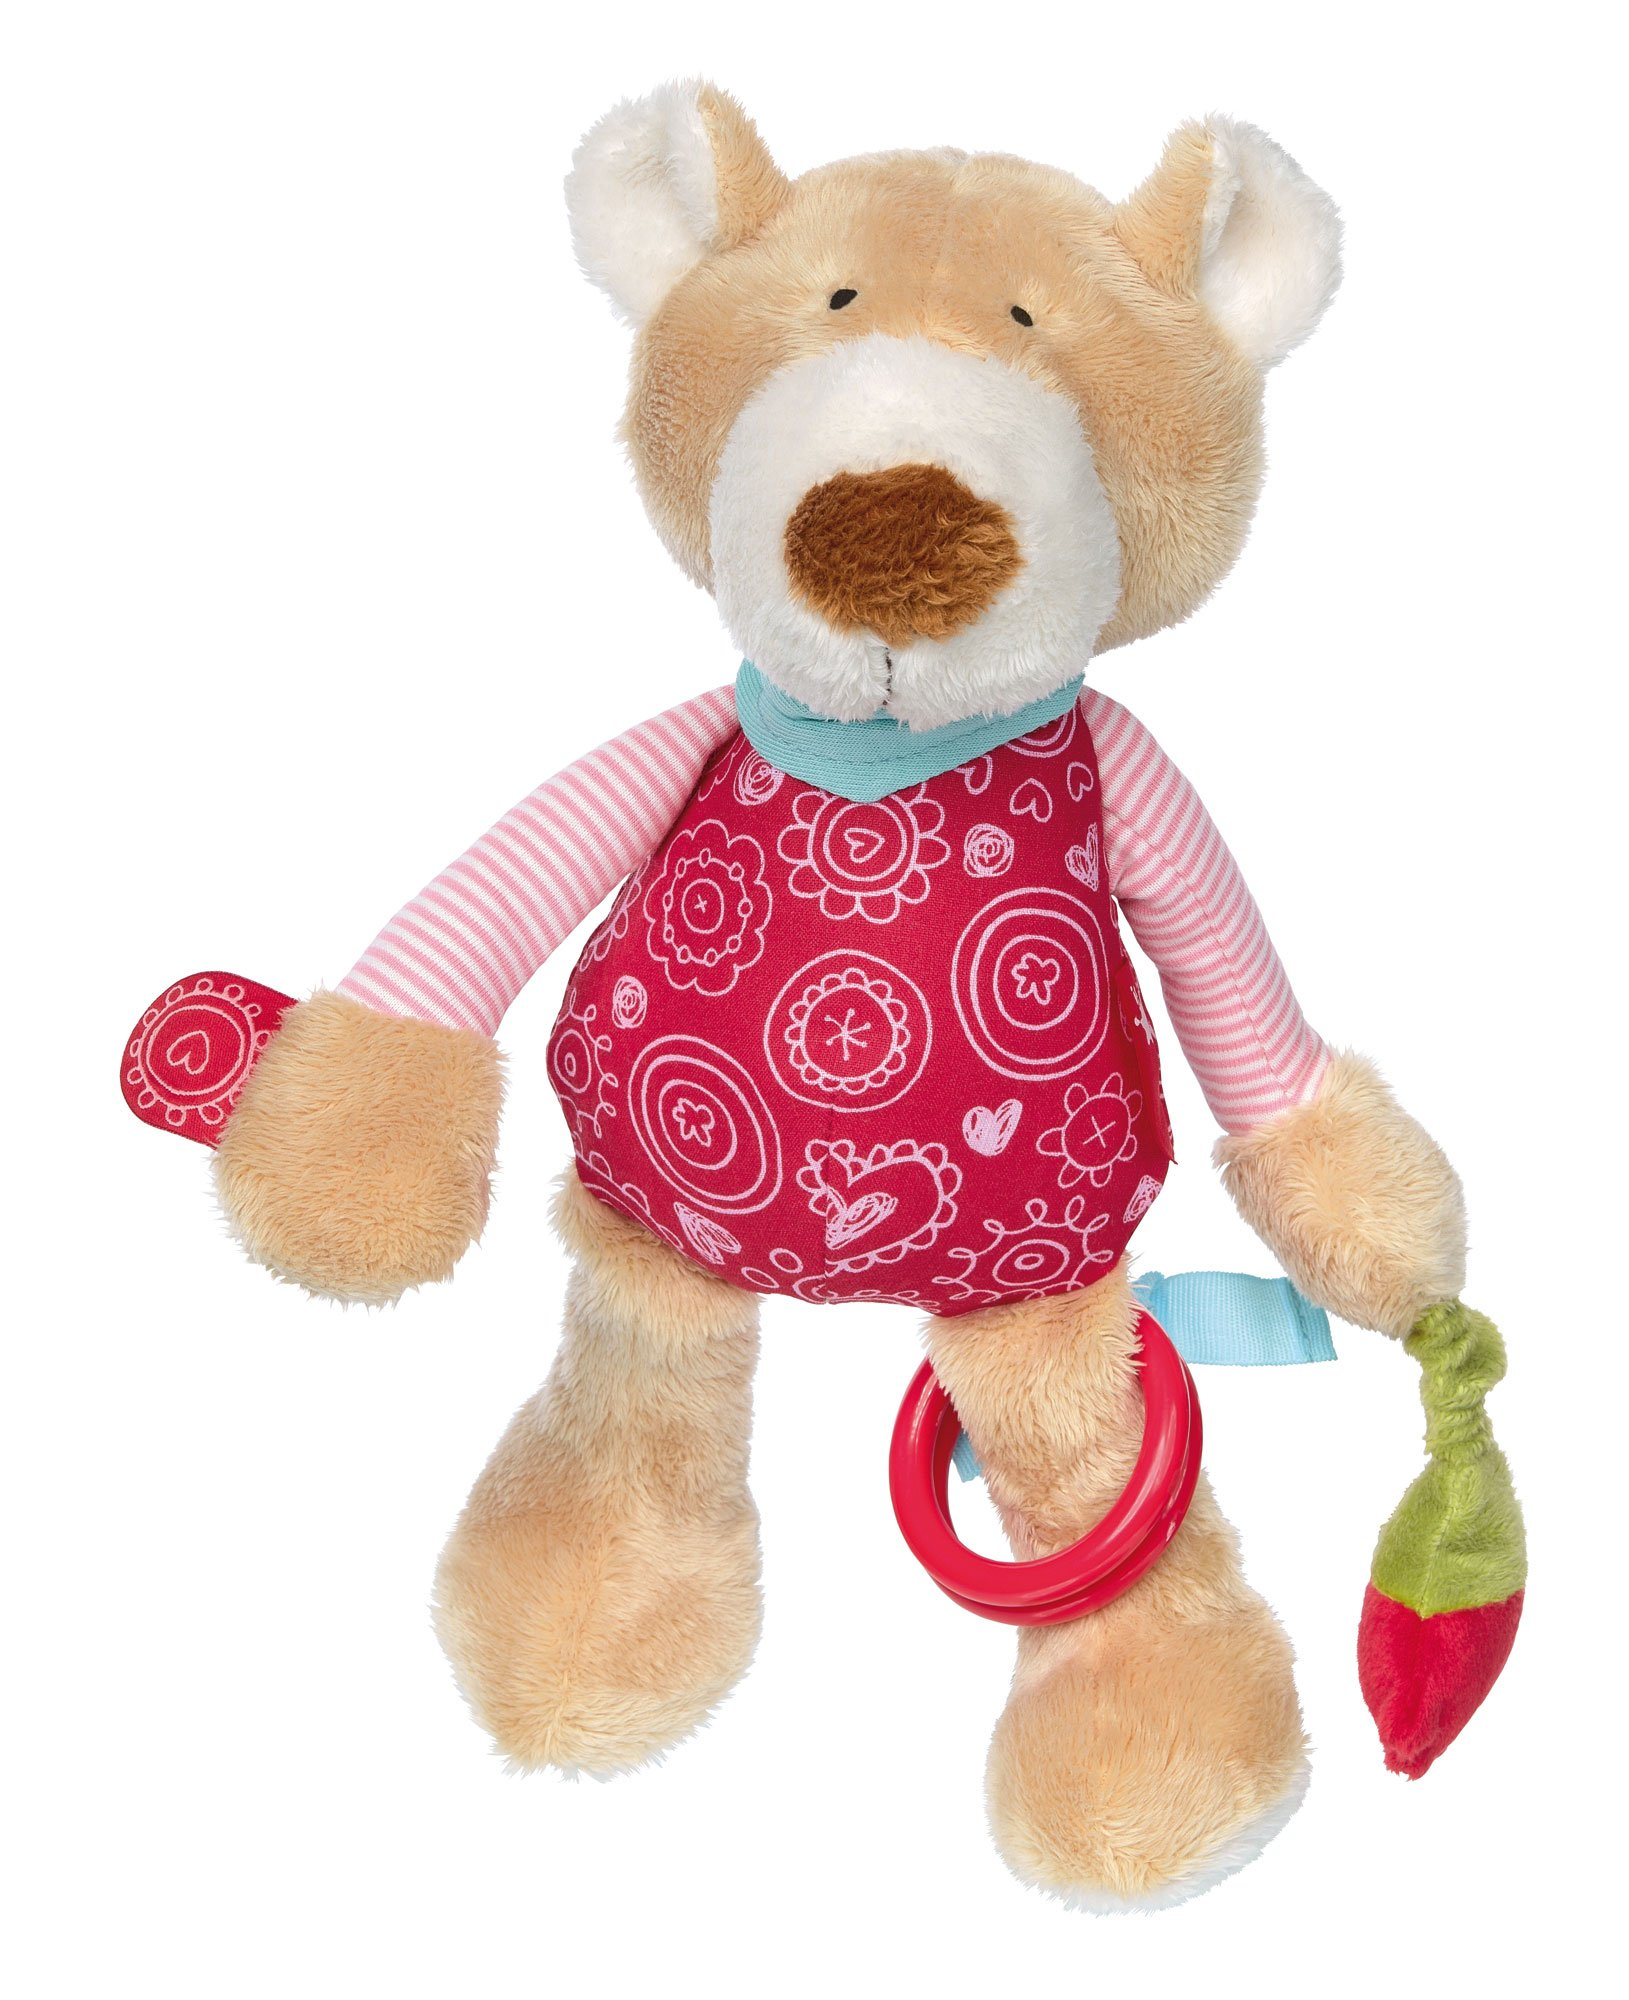 Sigikid Sigikid38733 27 x 11 x 10 cm Bellarella Bear Activity Toy